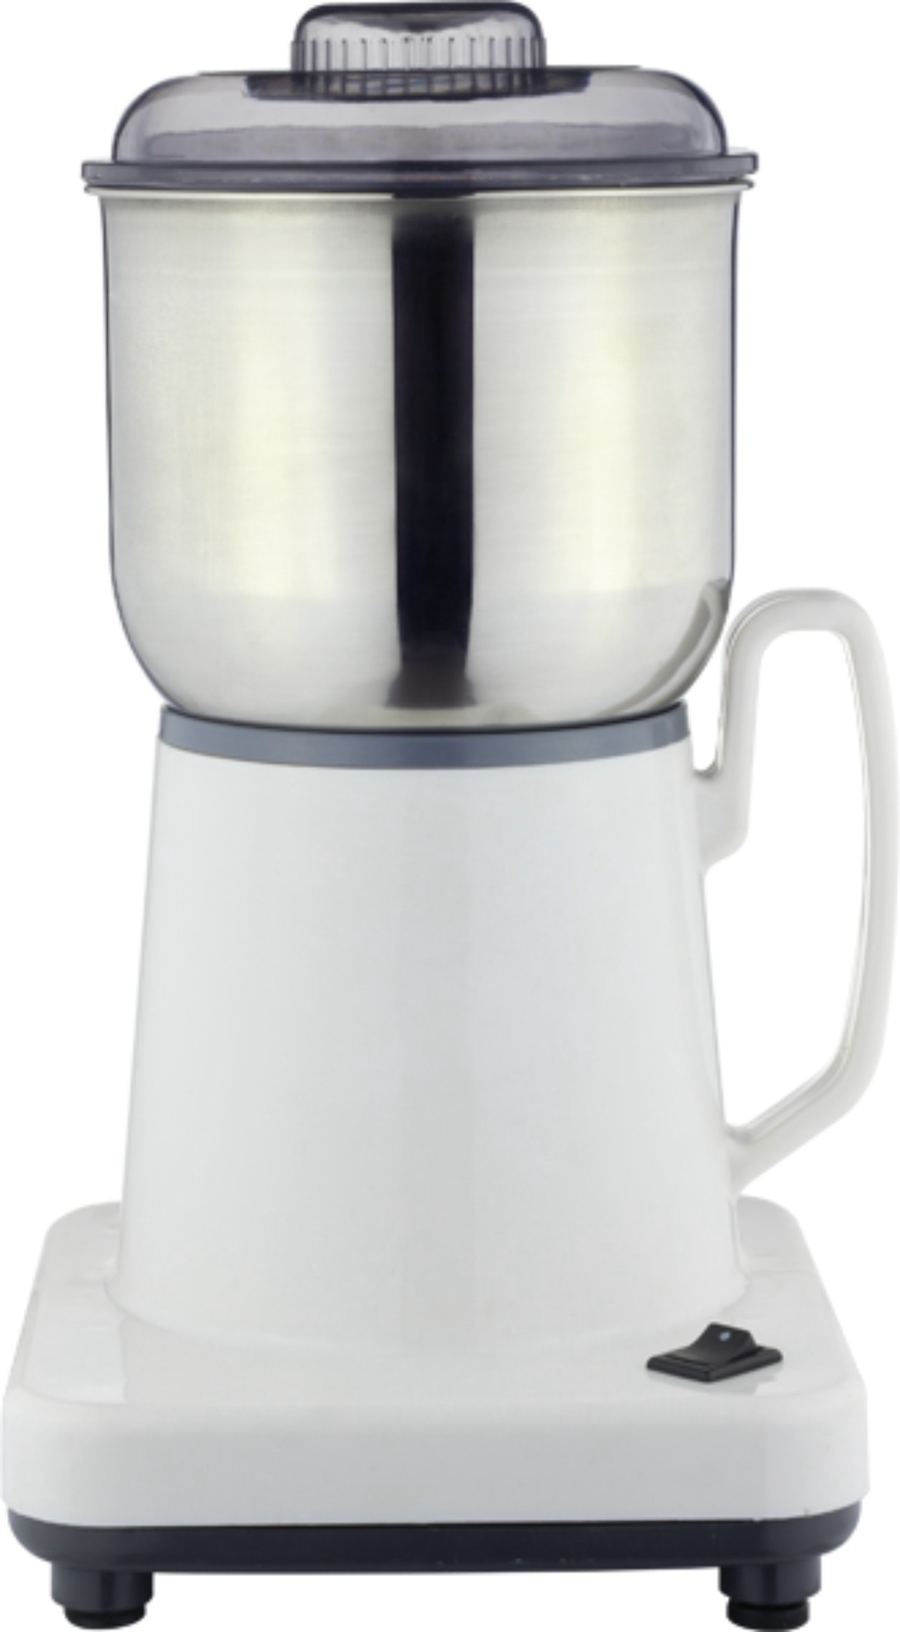 Professional coffee grinder home